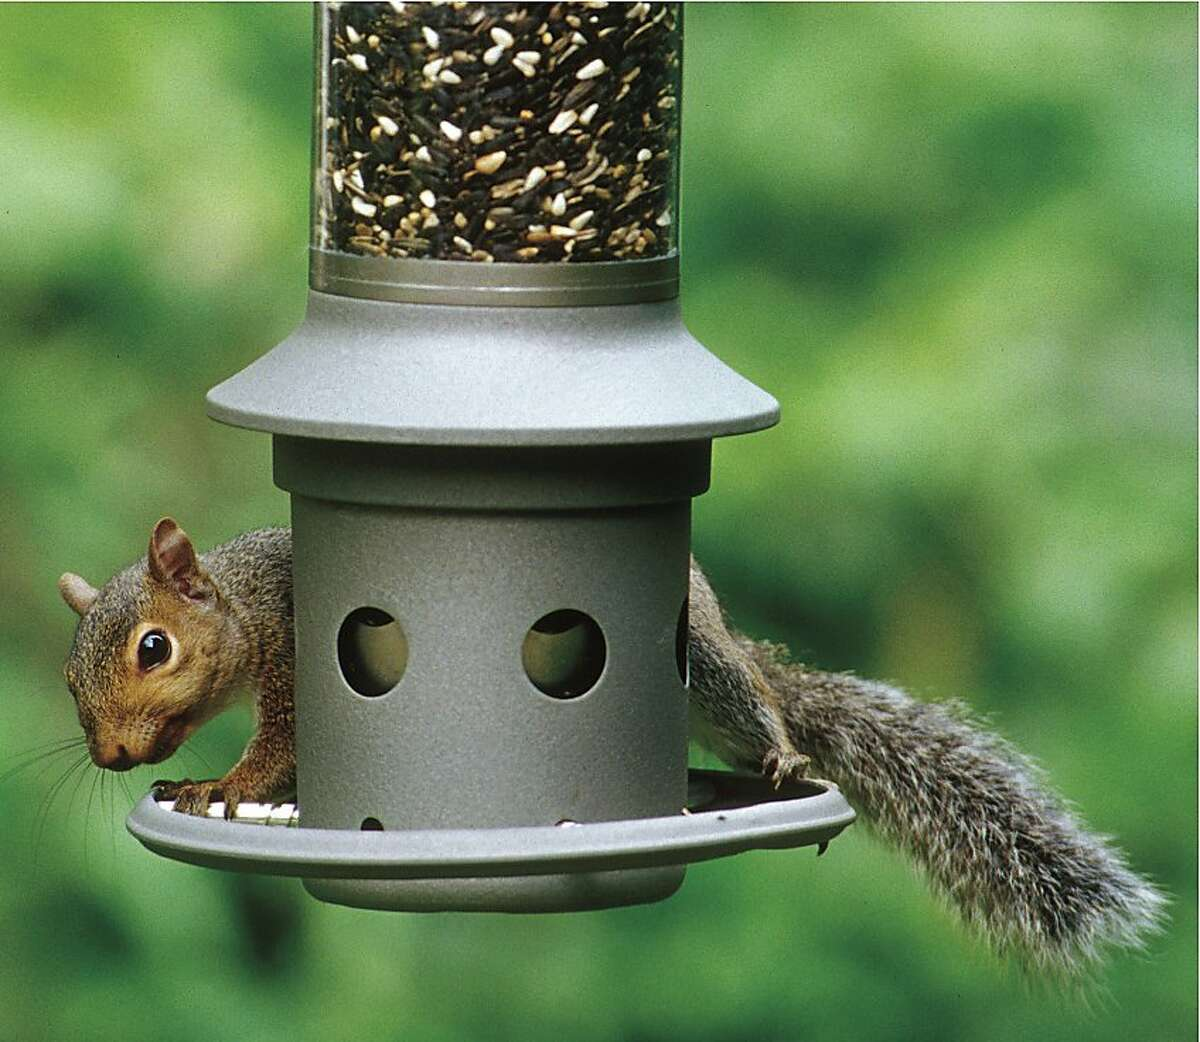 This photo provided by Wild Birds Unlimited shows a squirrel attempting to eat bird seed on an Eliminator, a squirrel-proof bird feeder. It protects your bird seed from persistent squirrels by technology registering sensitivity set by the owner, that closes the seed ports based on weight of the intruder standing on the perch ring. (AP Photo/Wild Birds Unlimited)